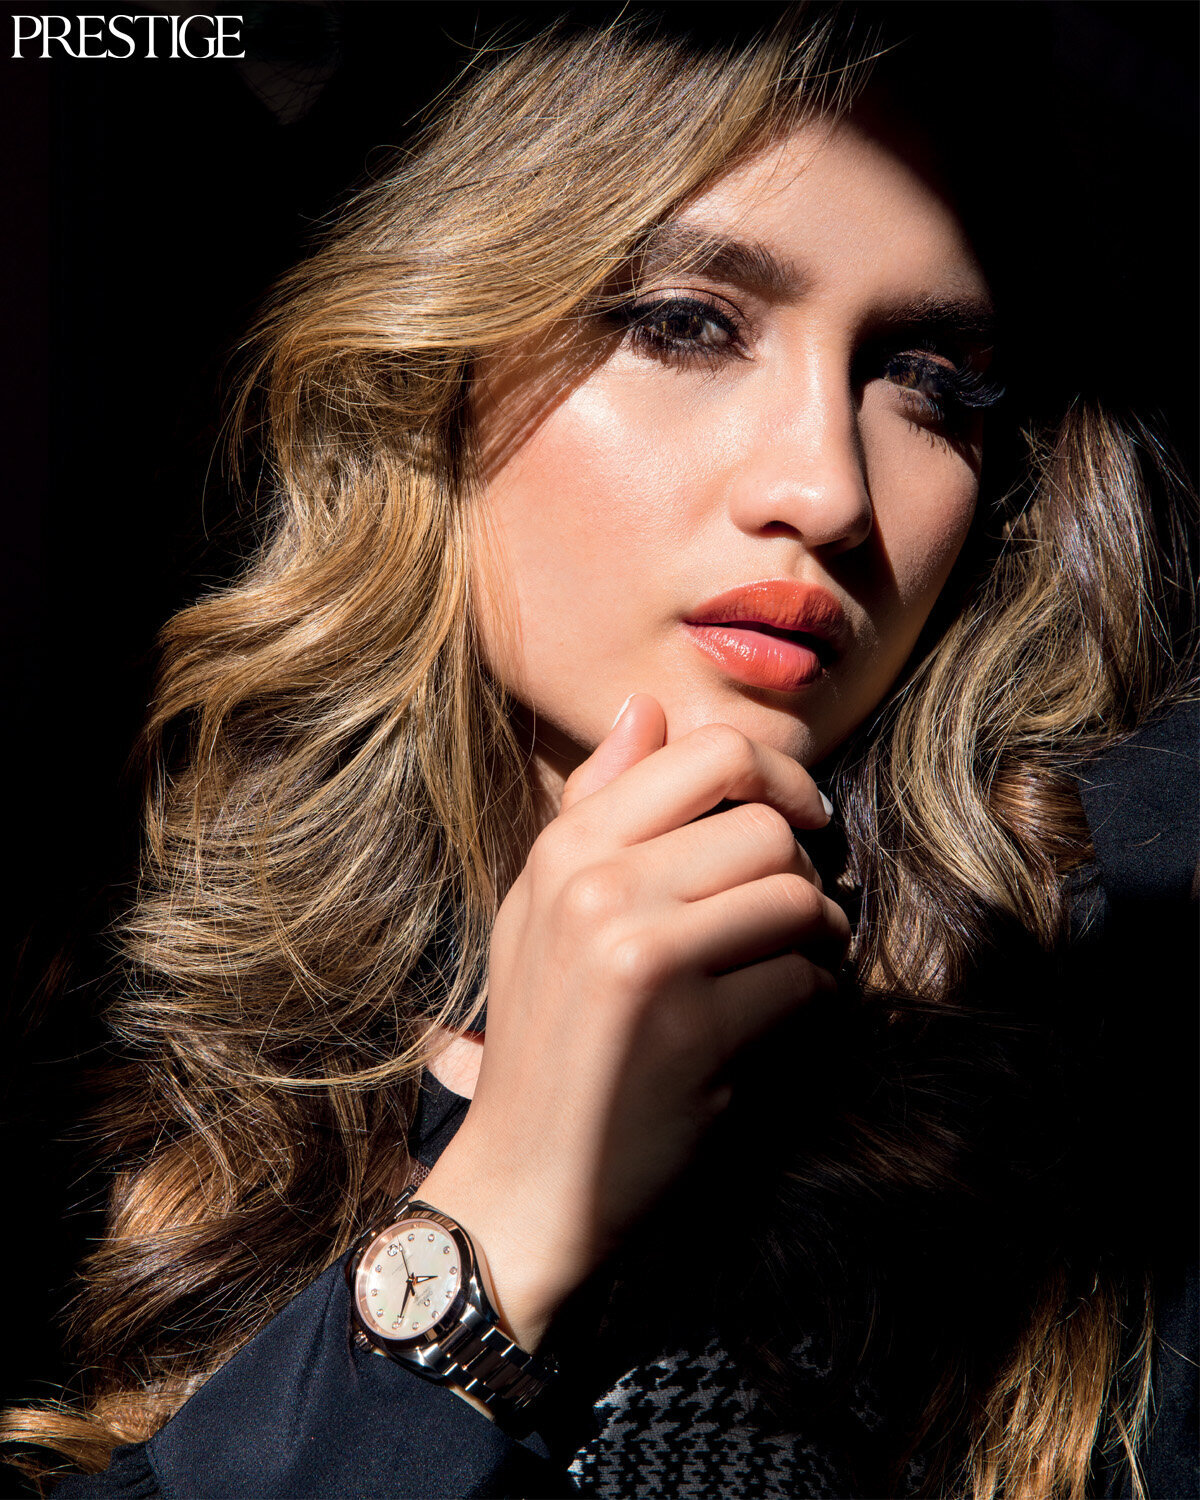 Prestige magazine, Omega, Cinta Laura, Hair and makeupartist Trine Juel 9